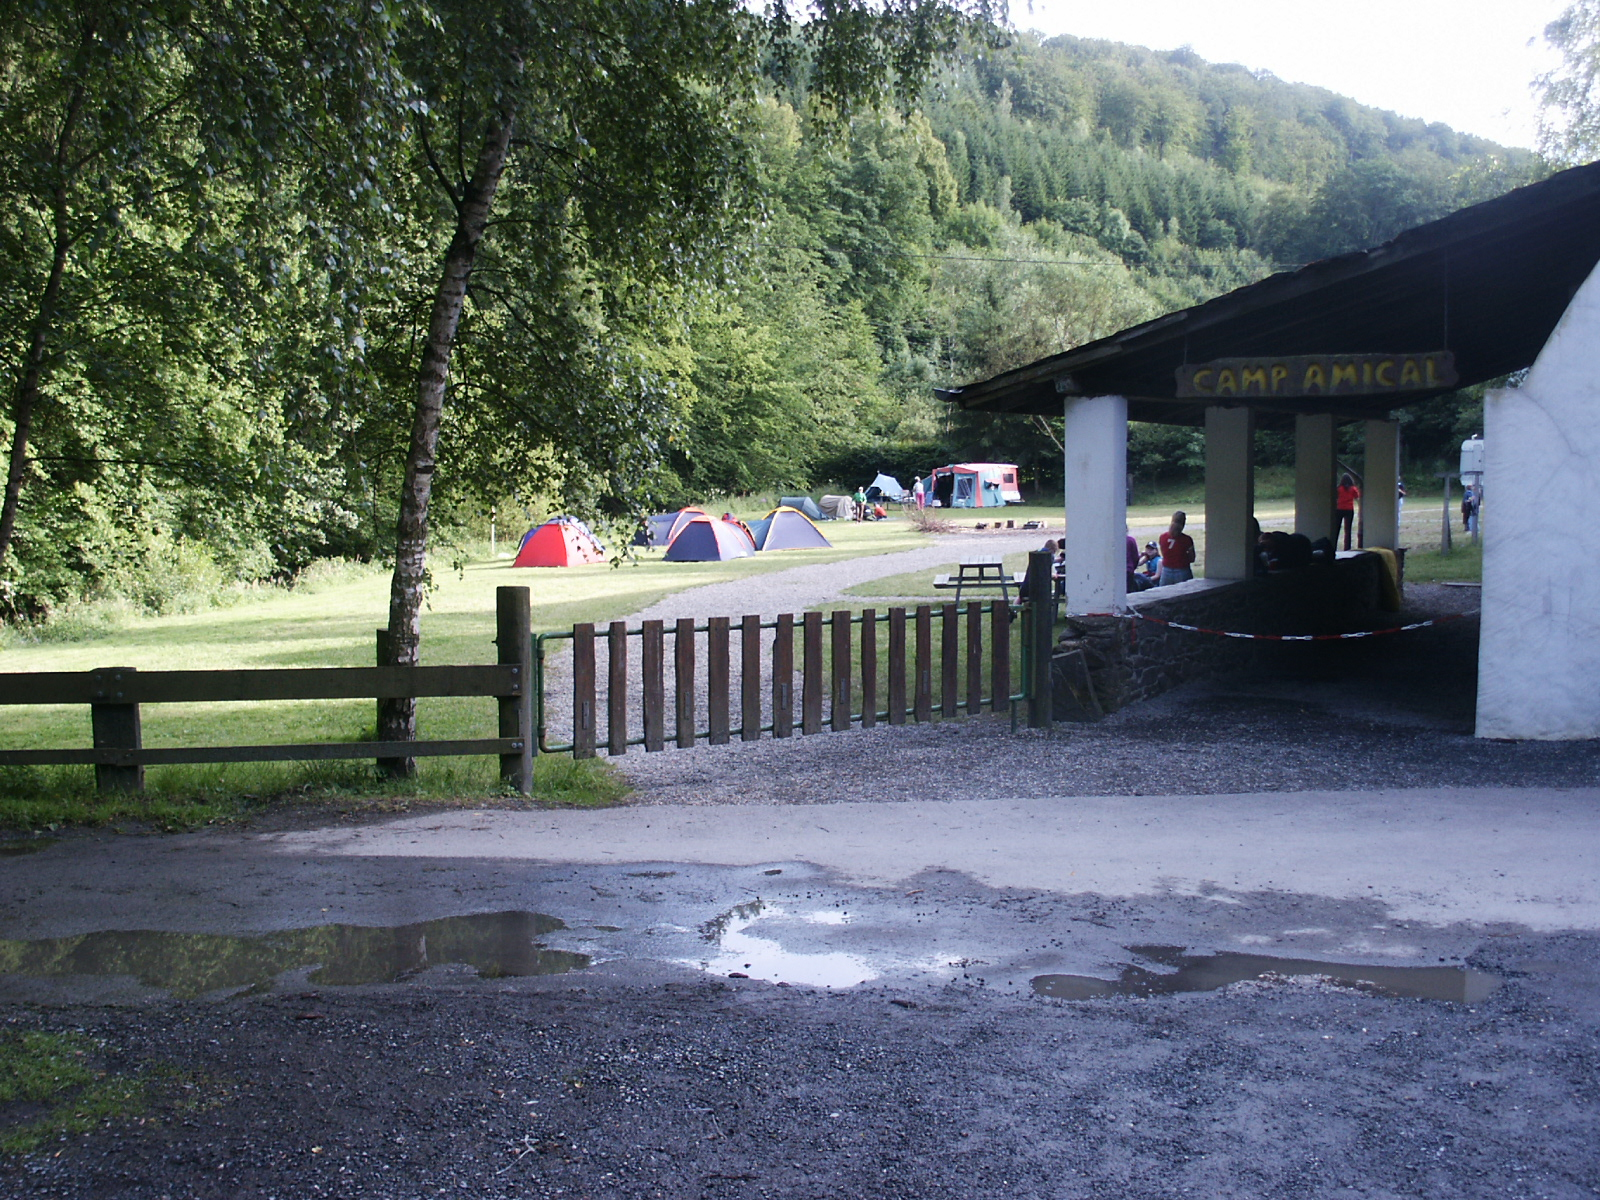 Camping Eule